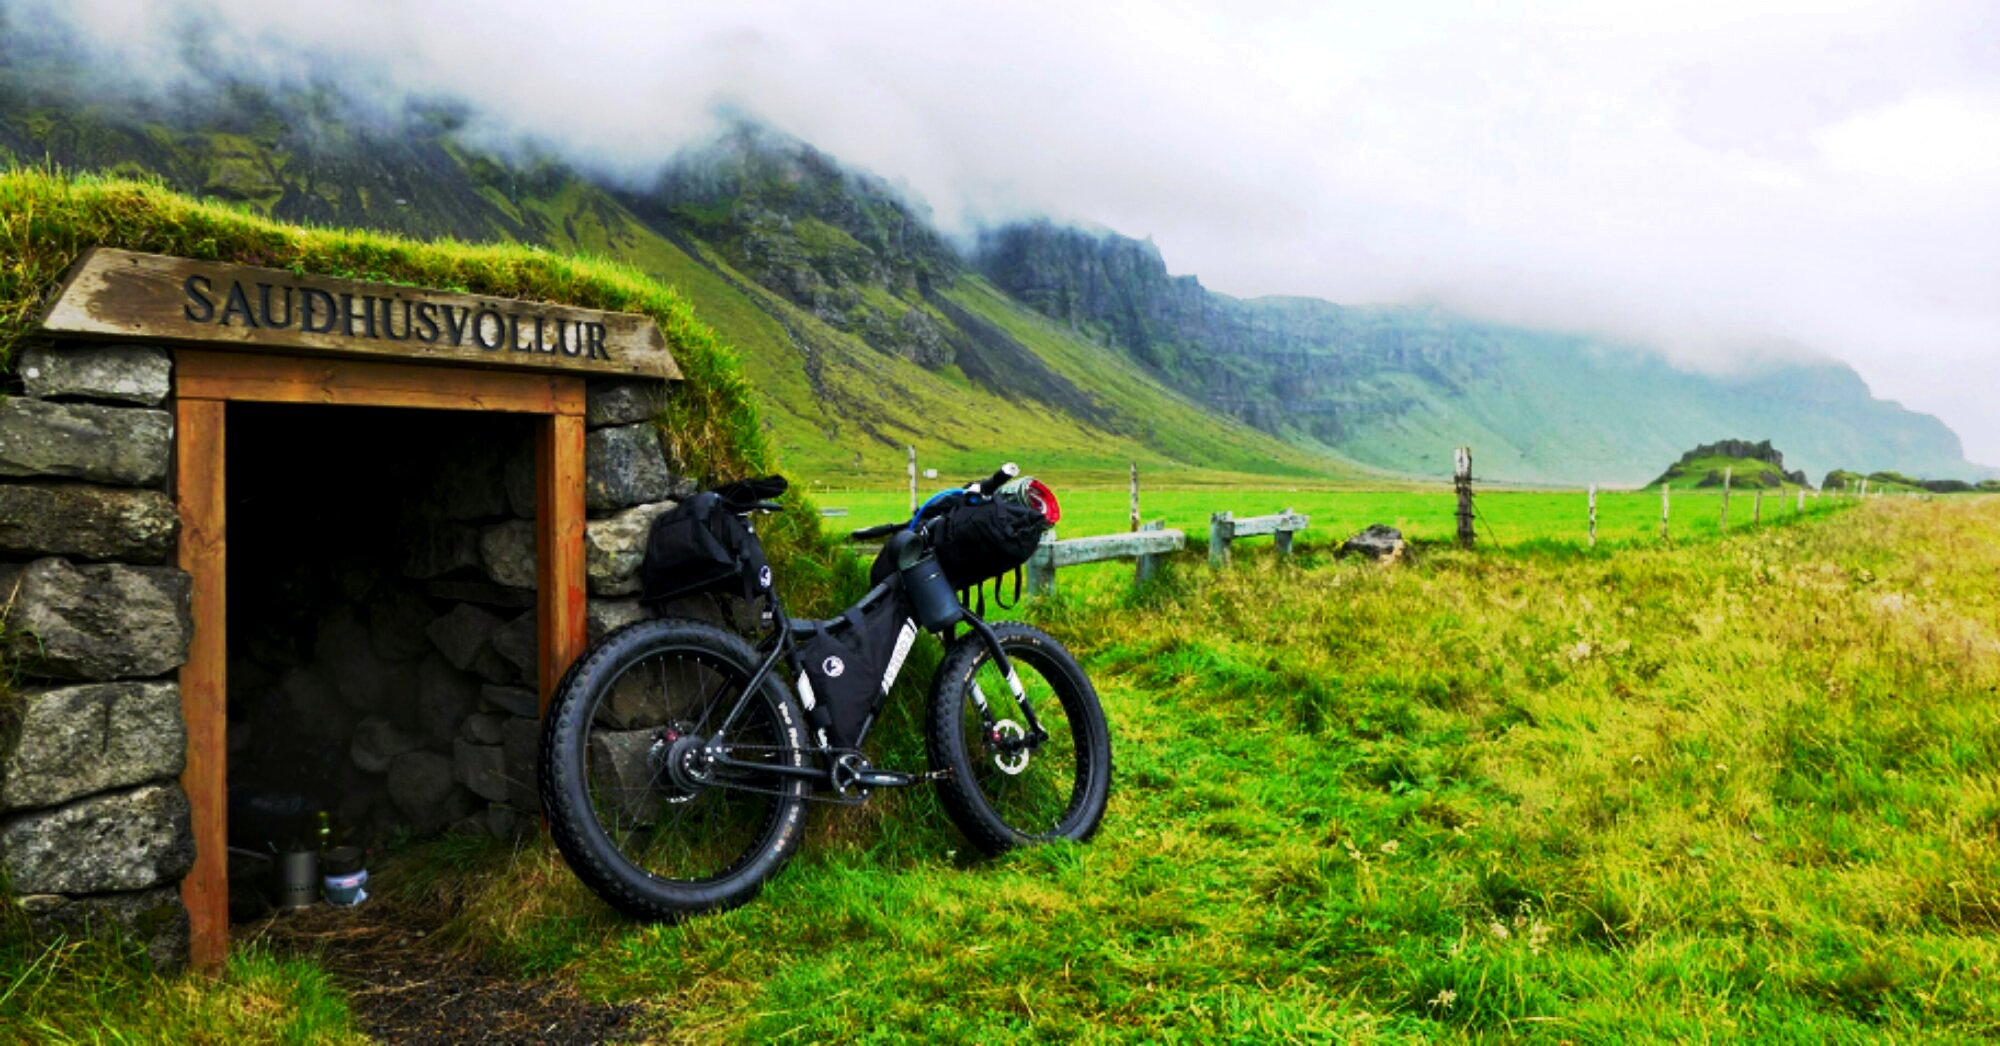 Unchained Iceland_bike against hut